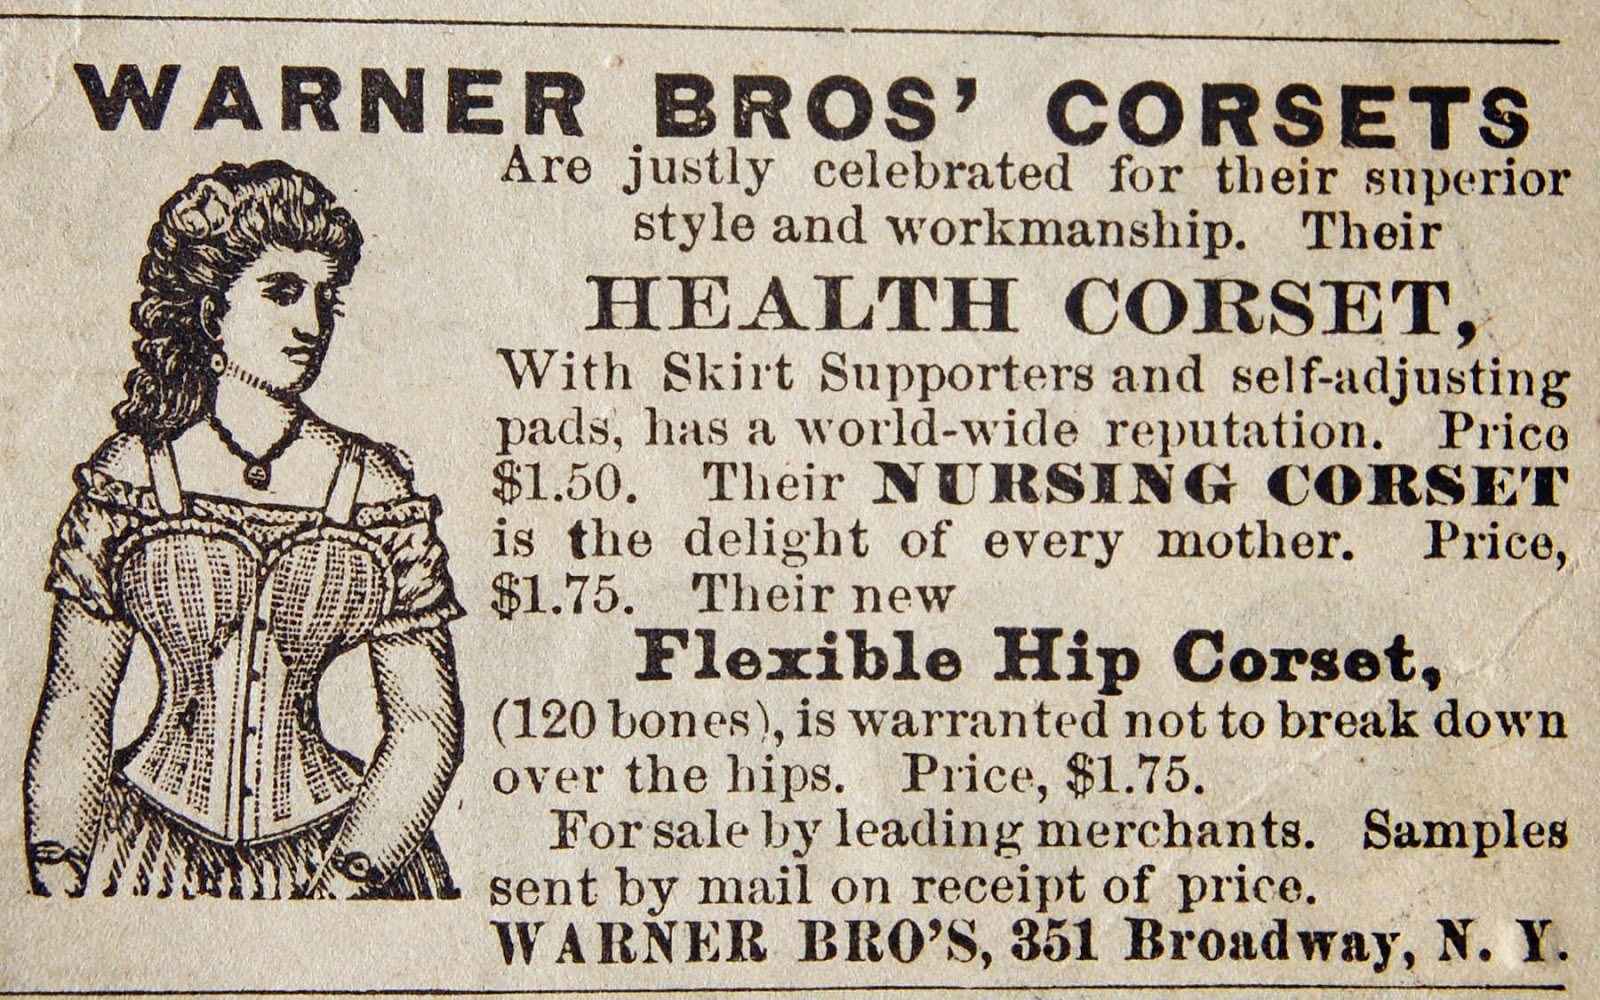 A Warner Brothers Corsets advertisement from 1878 detailing the health benefits of the company's products: Originally published in a 1878 issue of the Staunton Spectator of Staunton, Virginia.